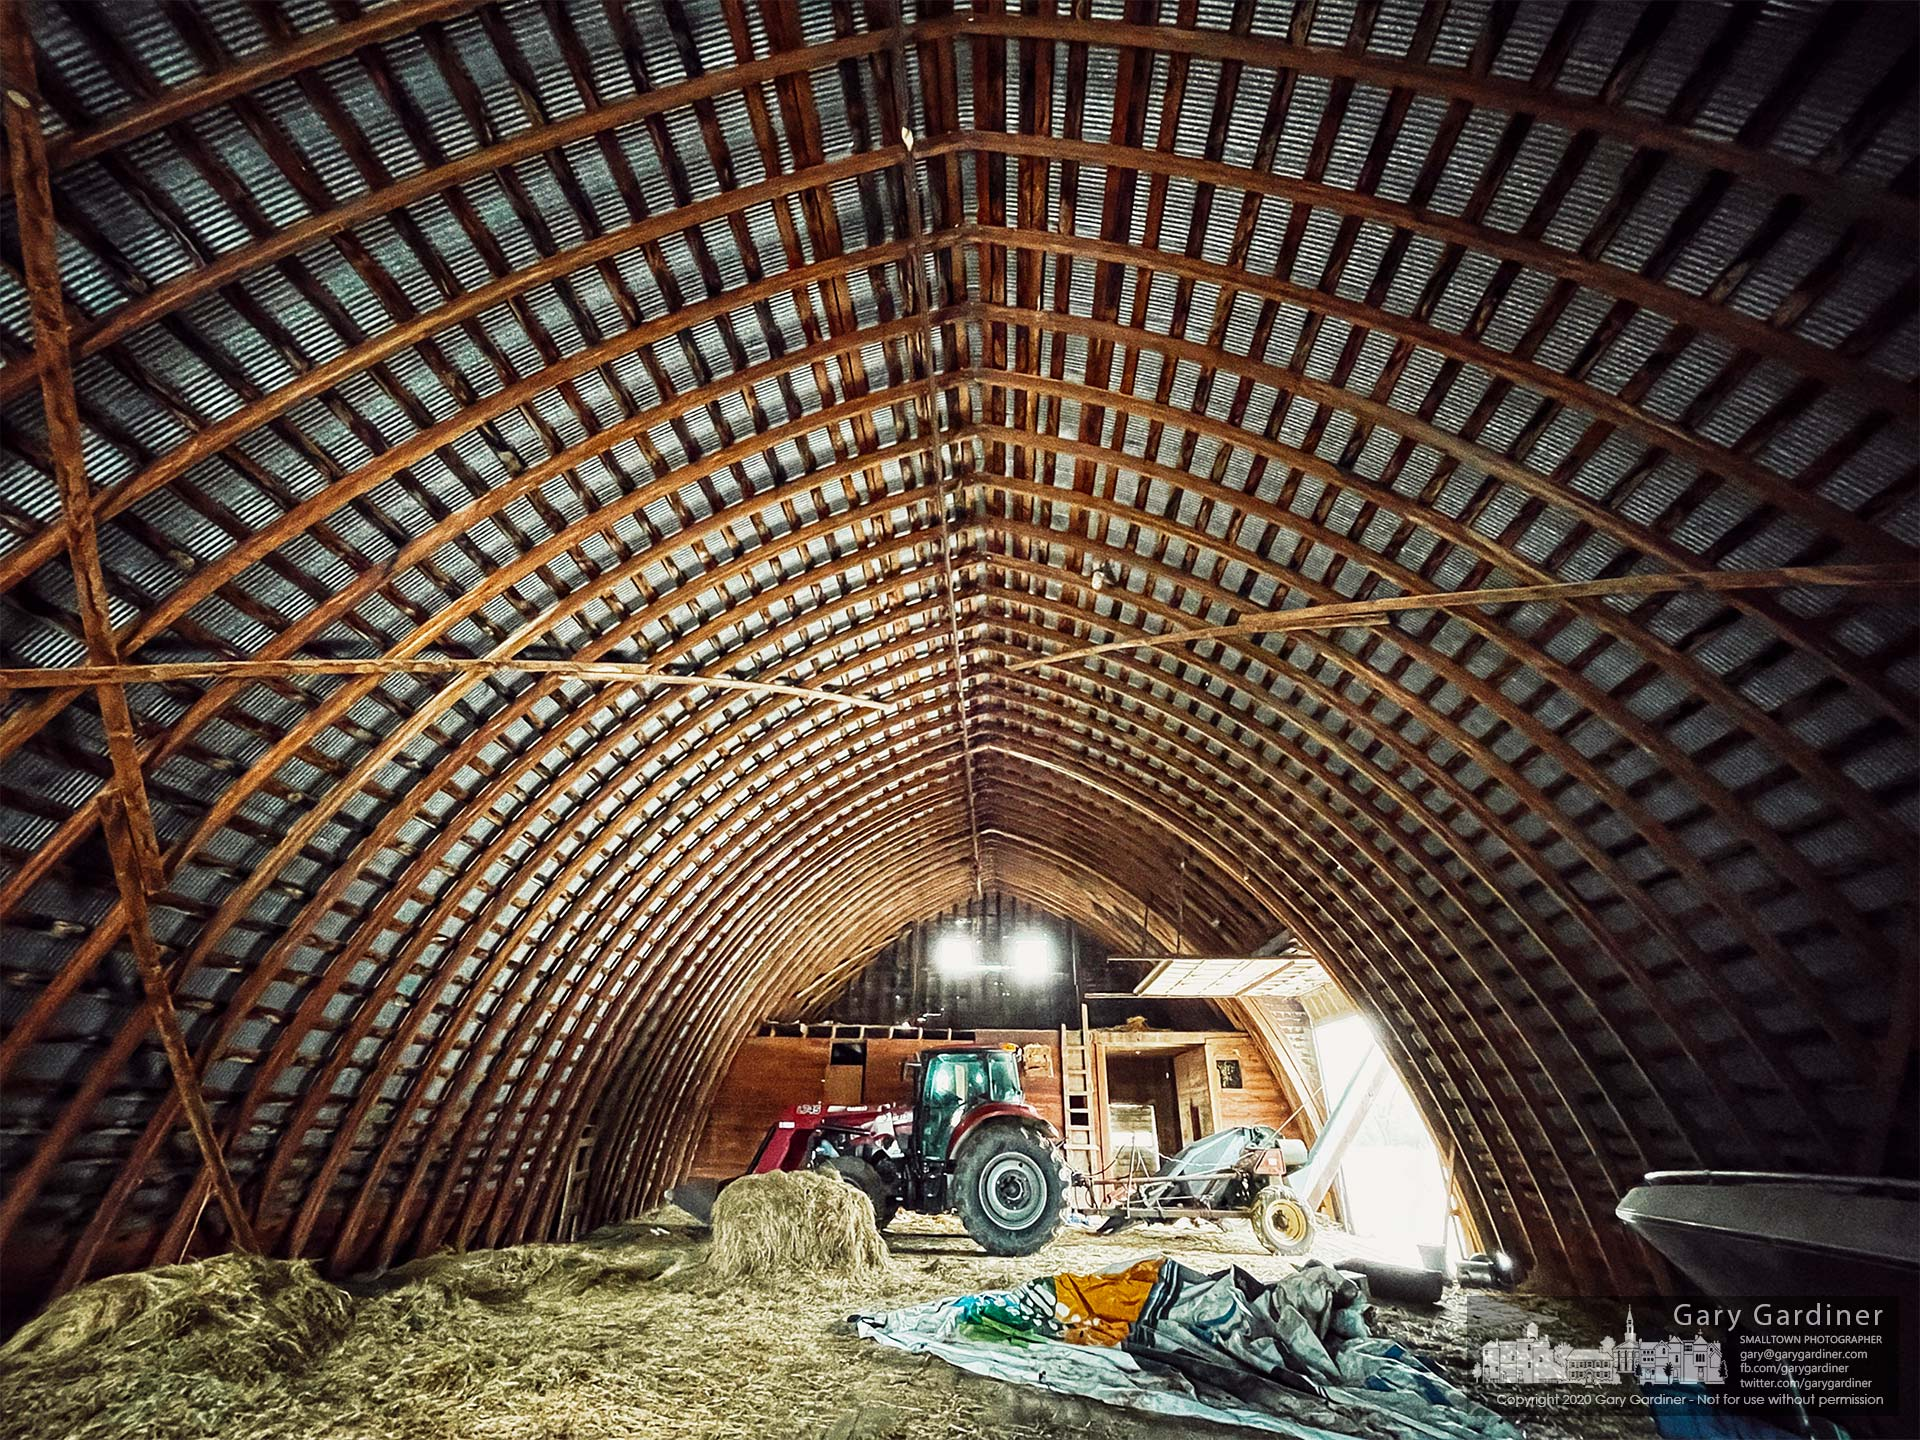 The barn at the Braun Farm sits almost empty with little hay and grains and only a few implements used for farming. My Final Photo for Jan. 18, 2021.